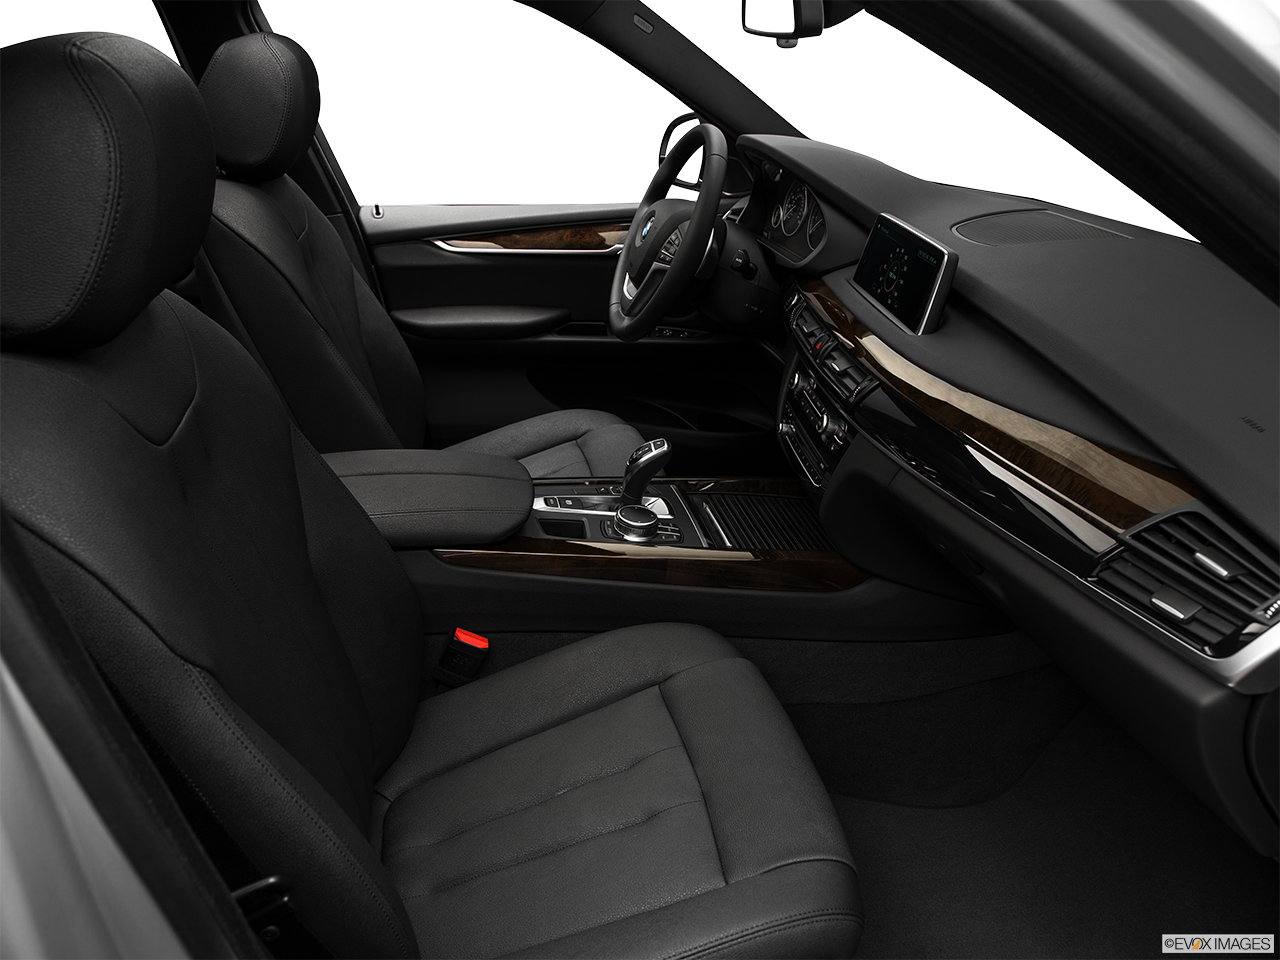 Interior view of the BMW X5